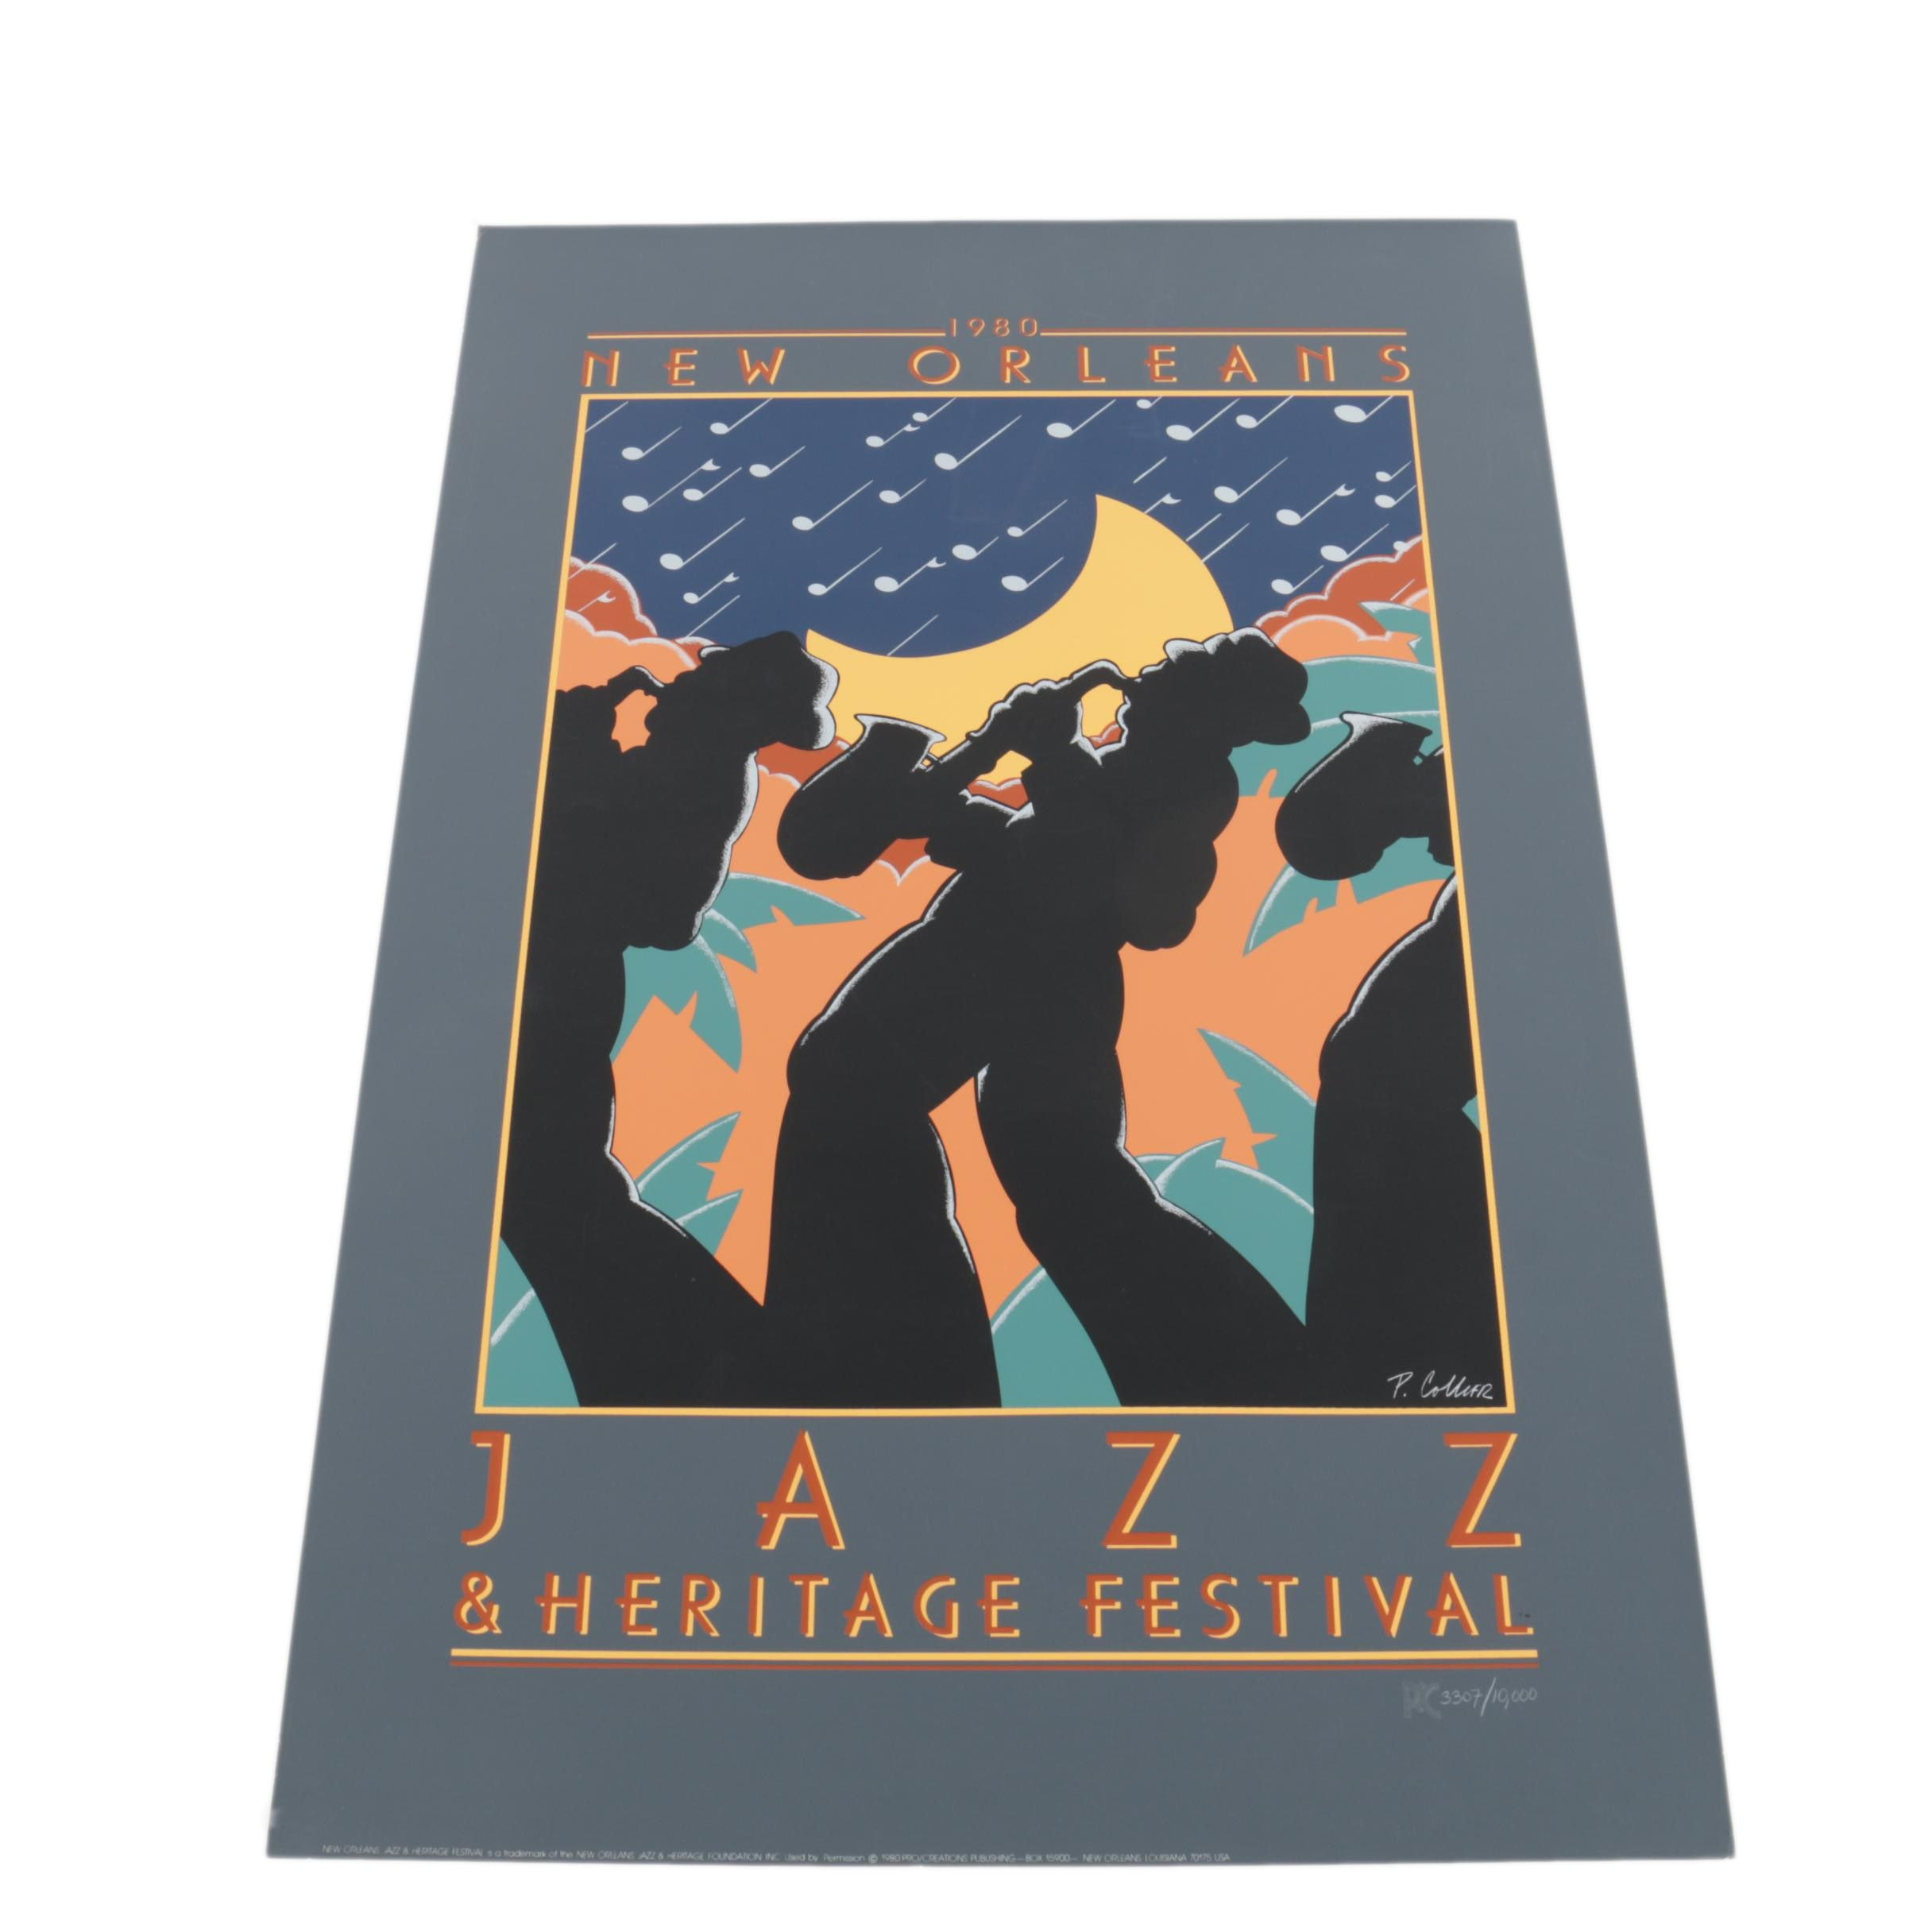 Collier Limited Edition 1980 New Orleans Jazz and Heritage Festival Serigraph